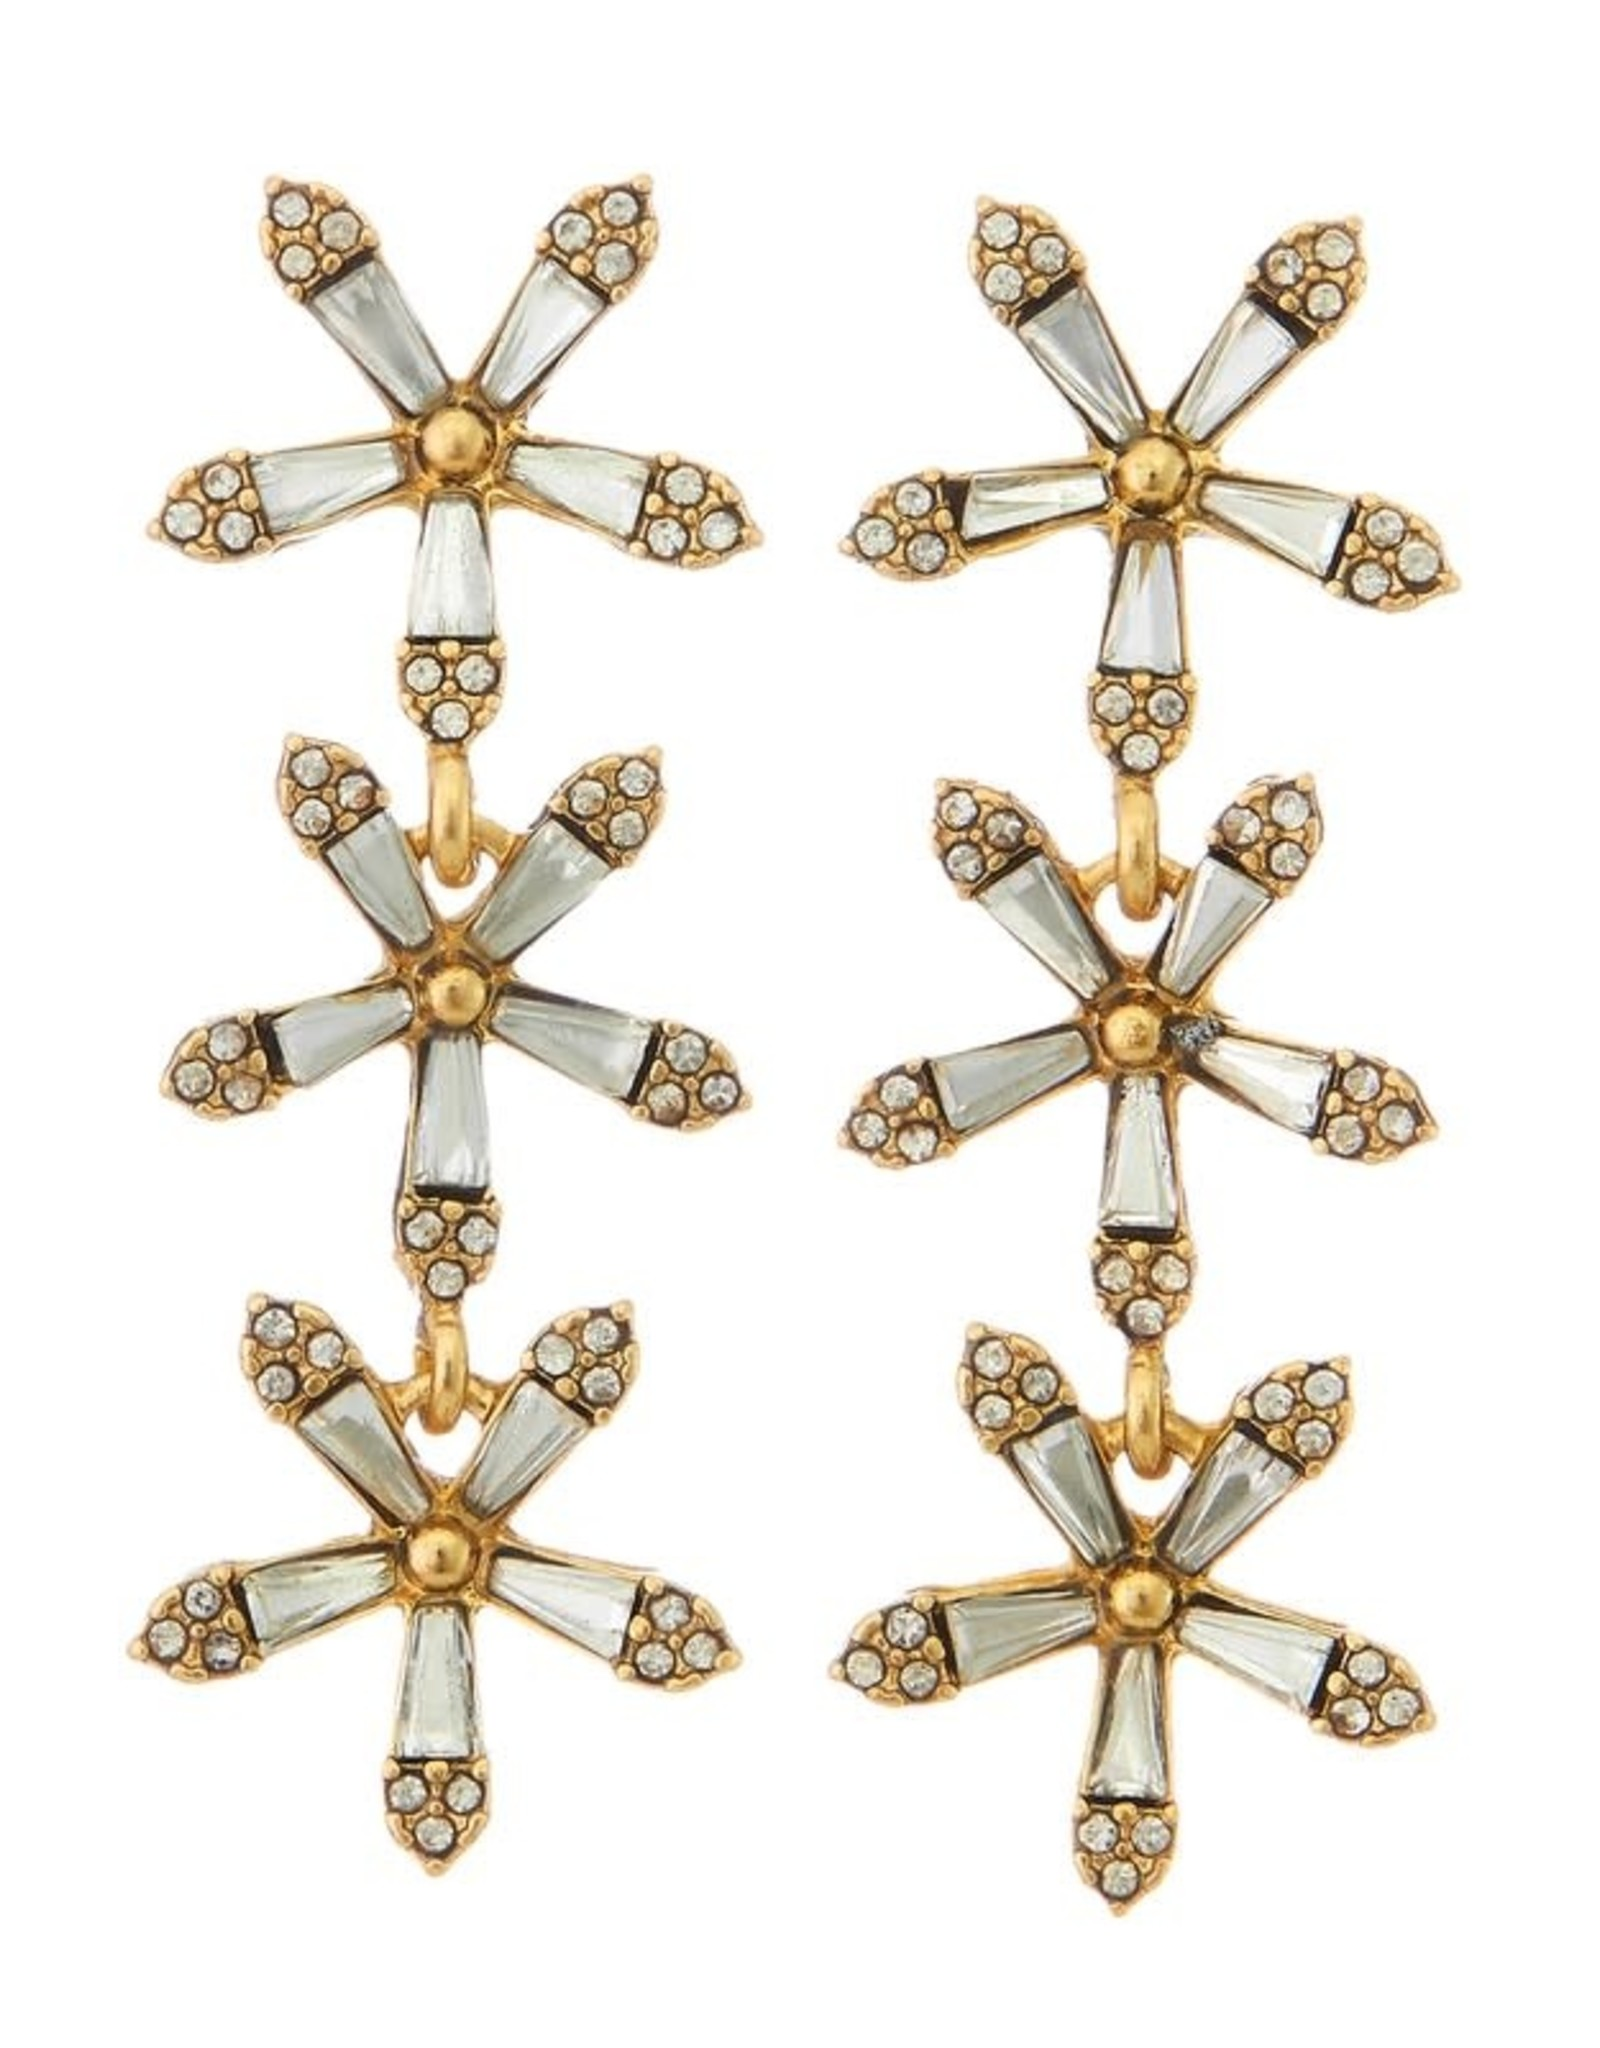 GOLD 3 TIERED STAR DROP EARRING